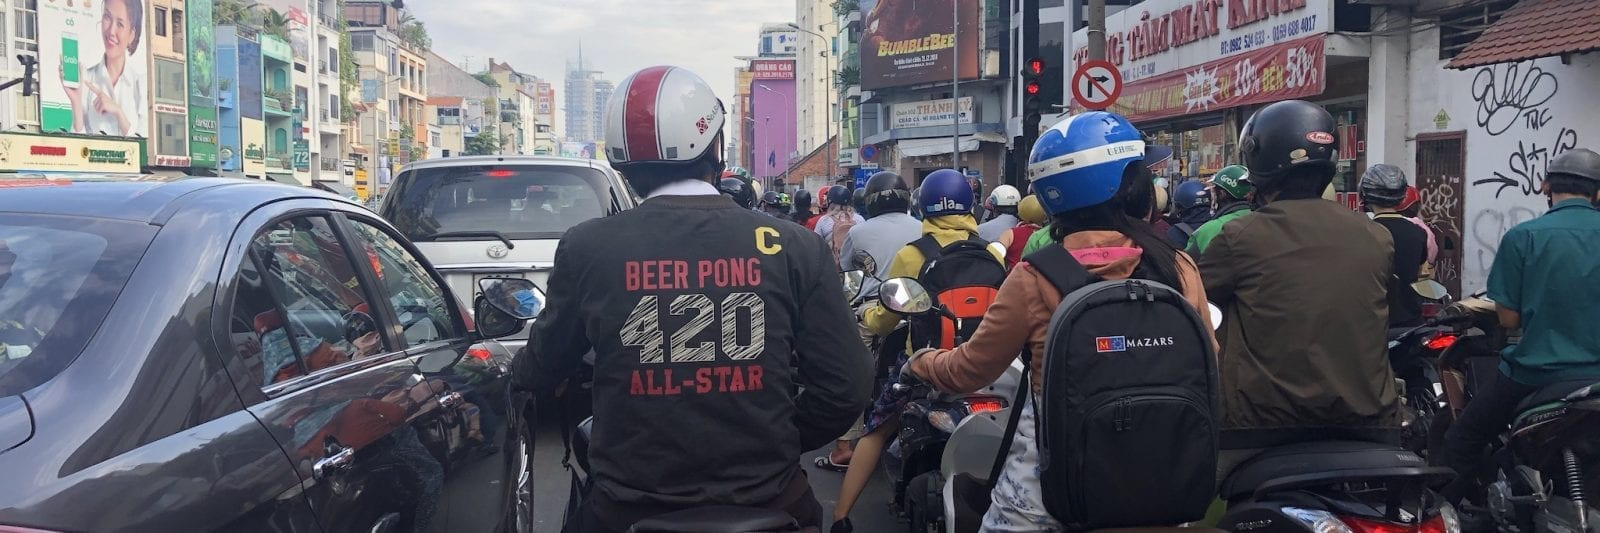 Driving a Motorbike in Saigon Vietnam 420 Beer Pong Champion